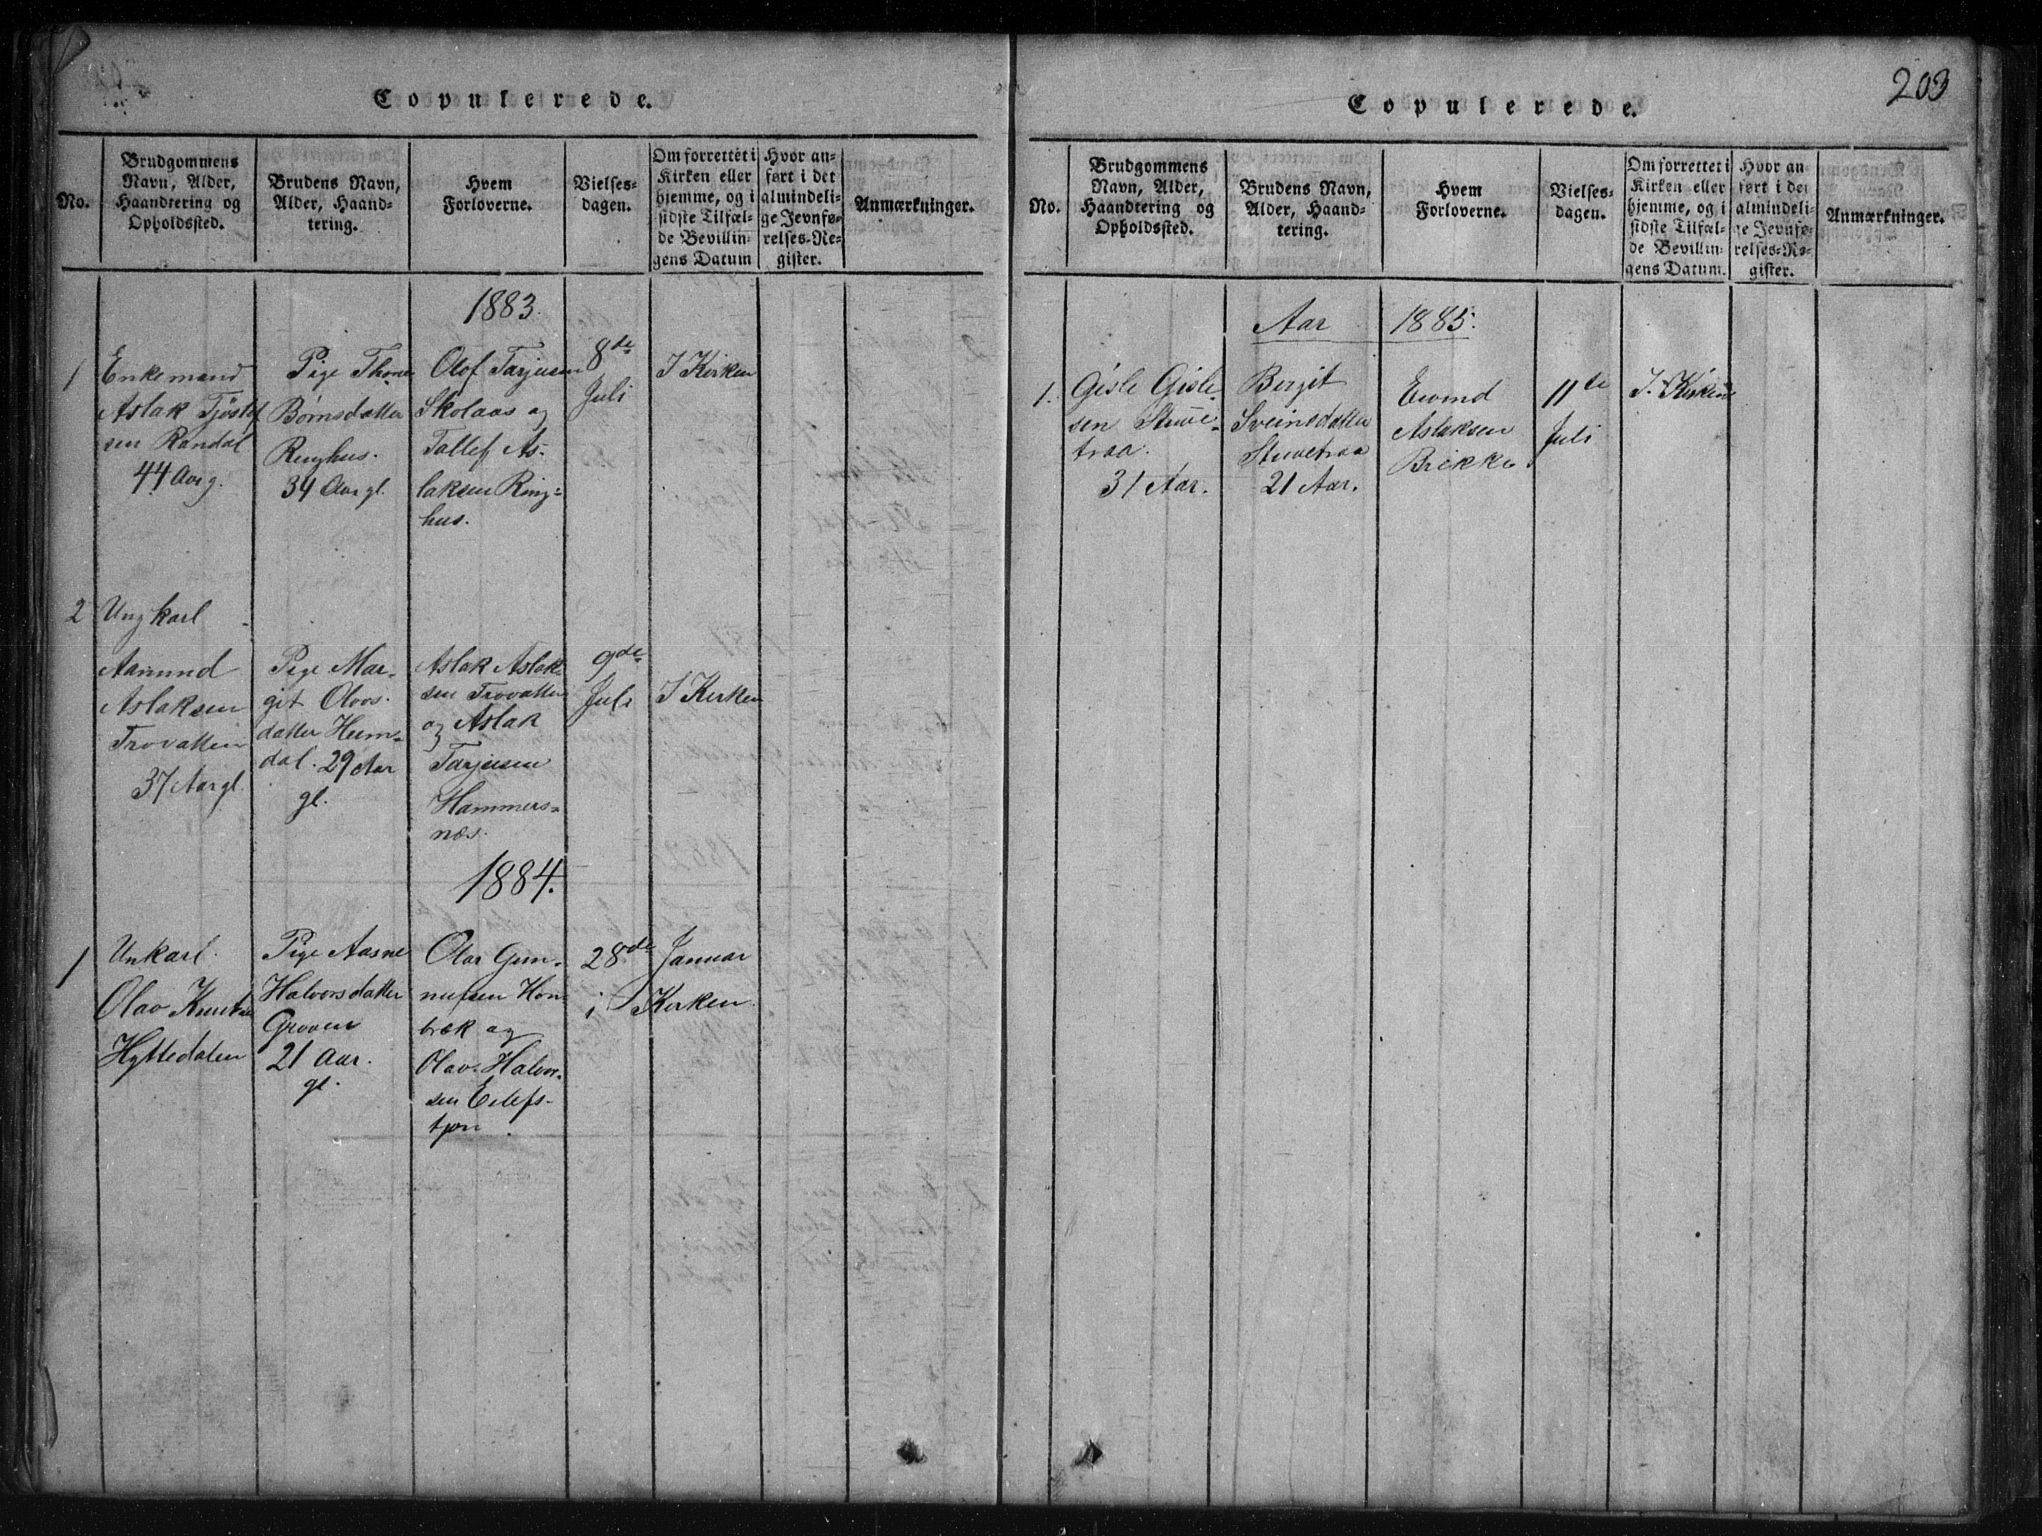 SAKO, Rauland kirkebøker, G/Gb/L0001: Parish register (copy) no. II 1, 1815-1886, p. 203